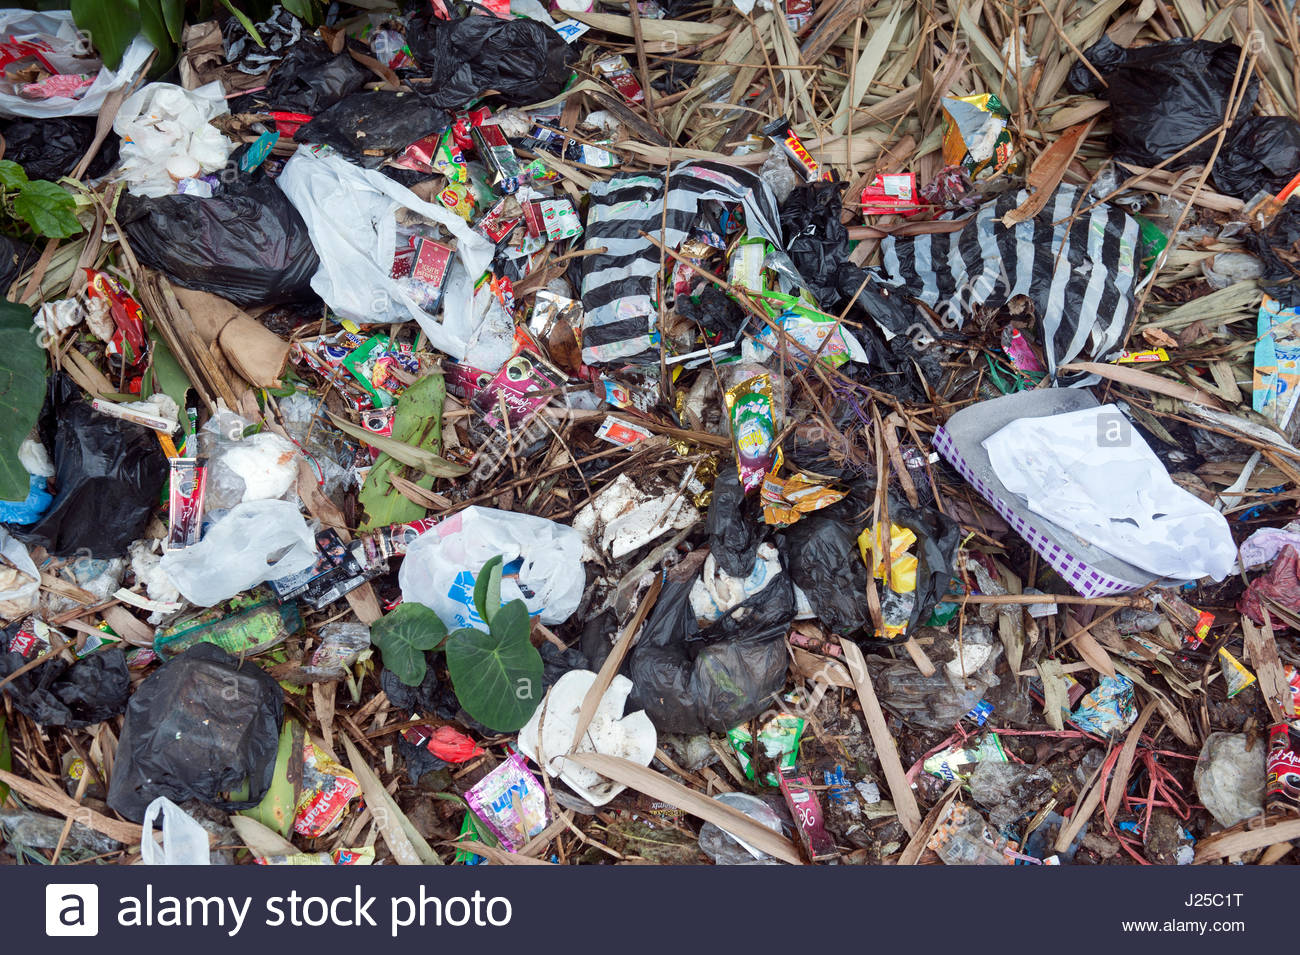 Cianjar Indonesia Litter on the side of the road in a Cianjar suburb. Single use plastics improperly disposed of - Stock Image